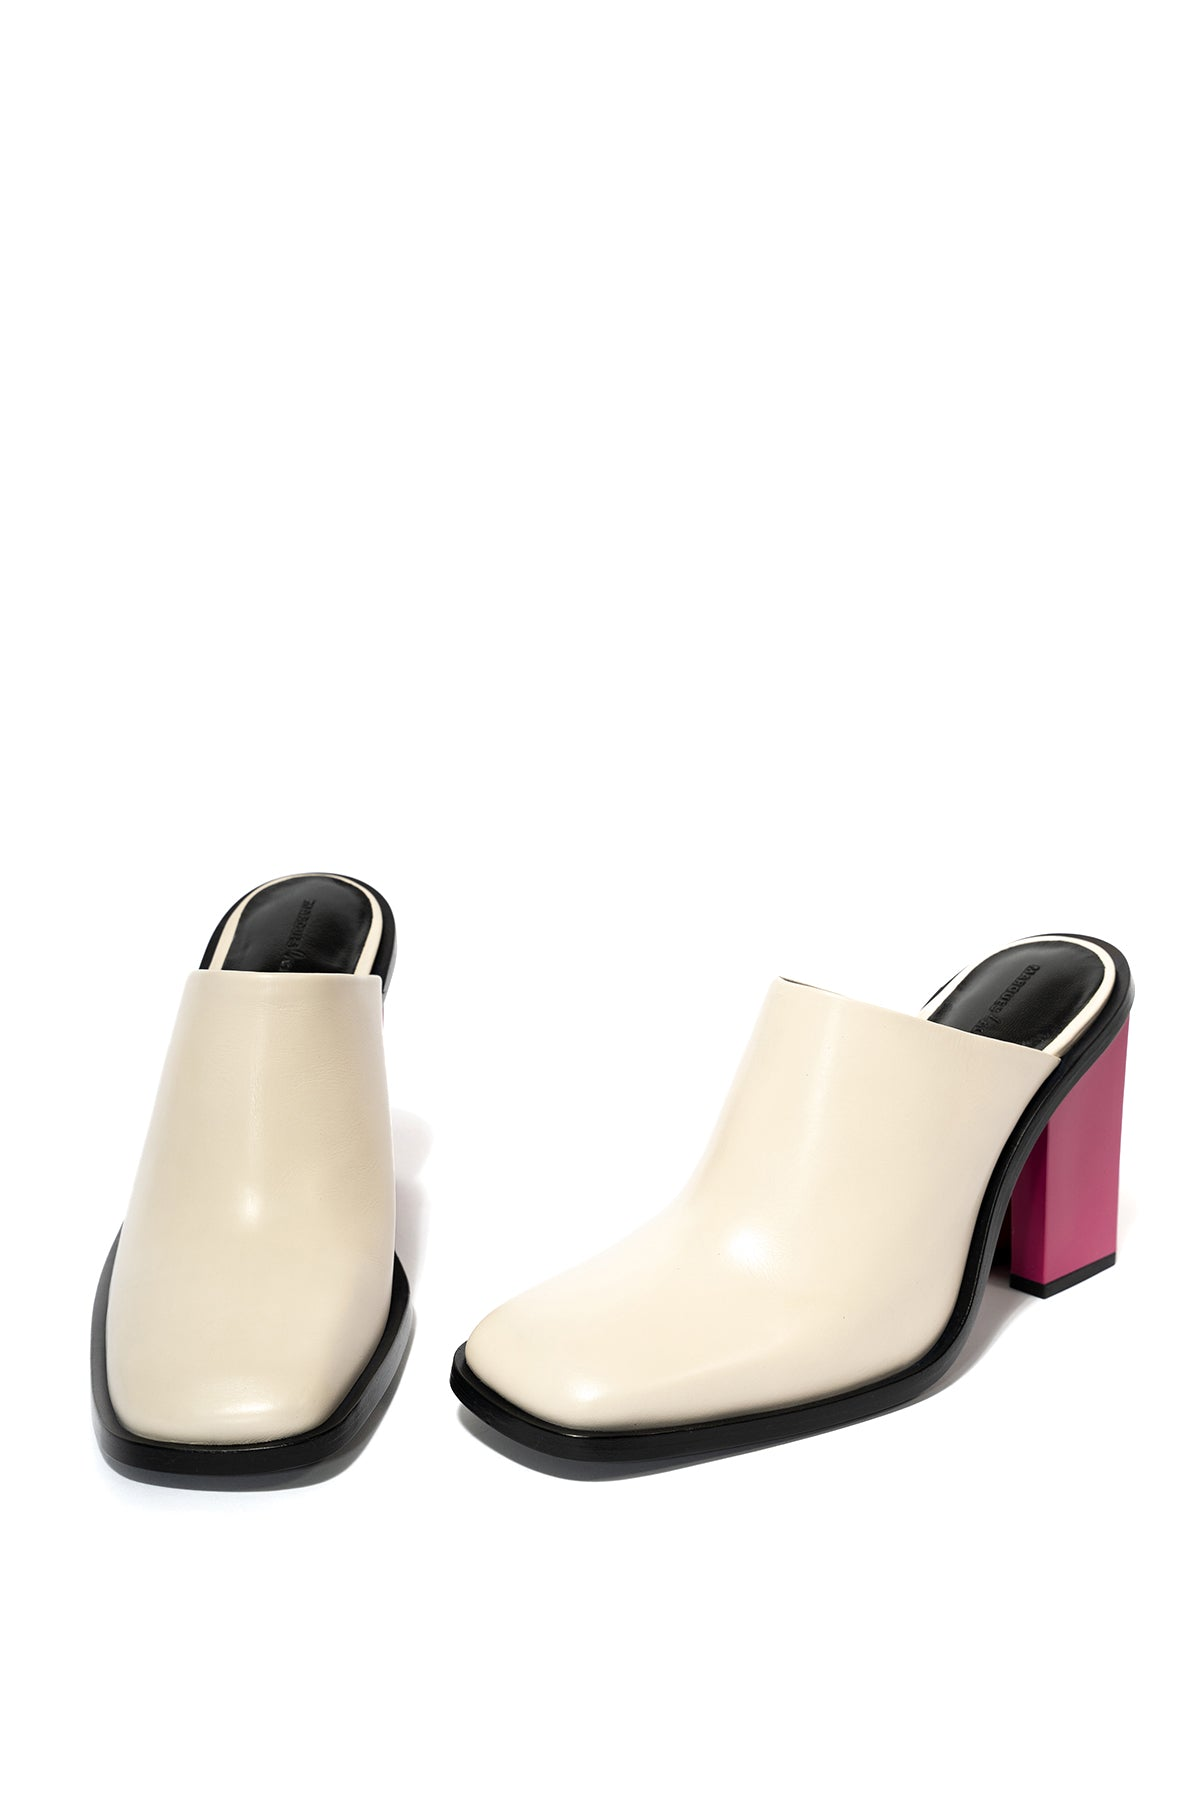 marques almeida LEATHER MULE W/ M'A HEEL